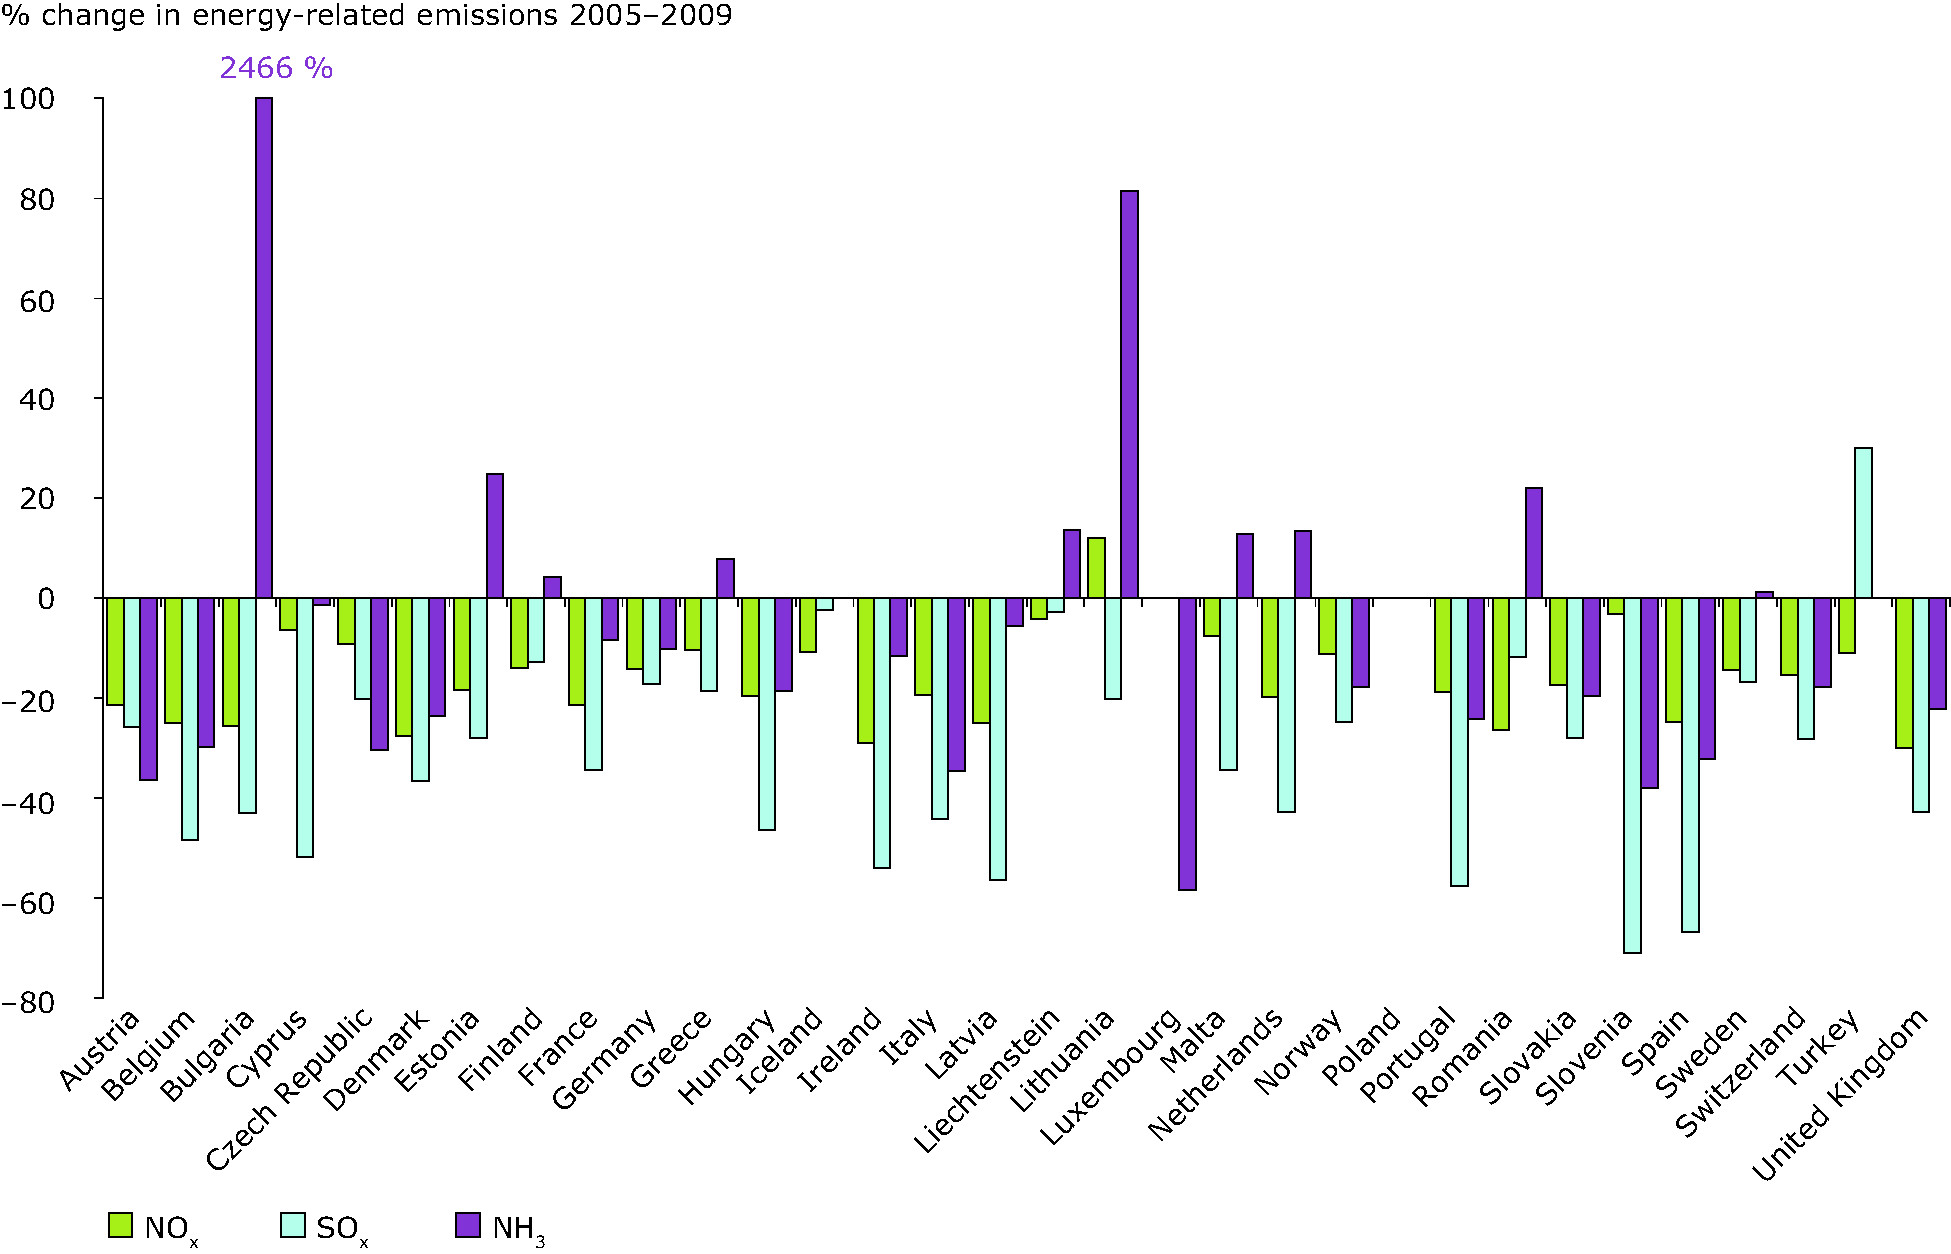 Overall change in energy related emissions of SO2, NOx and NH3 by country, 2005-2009